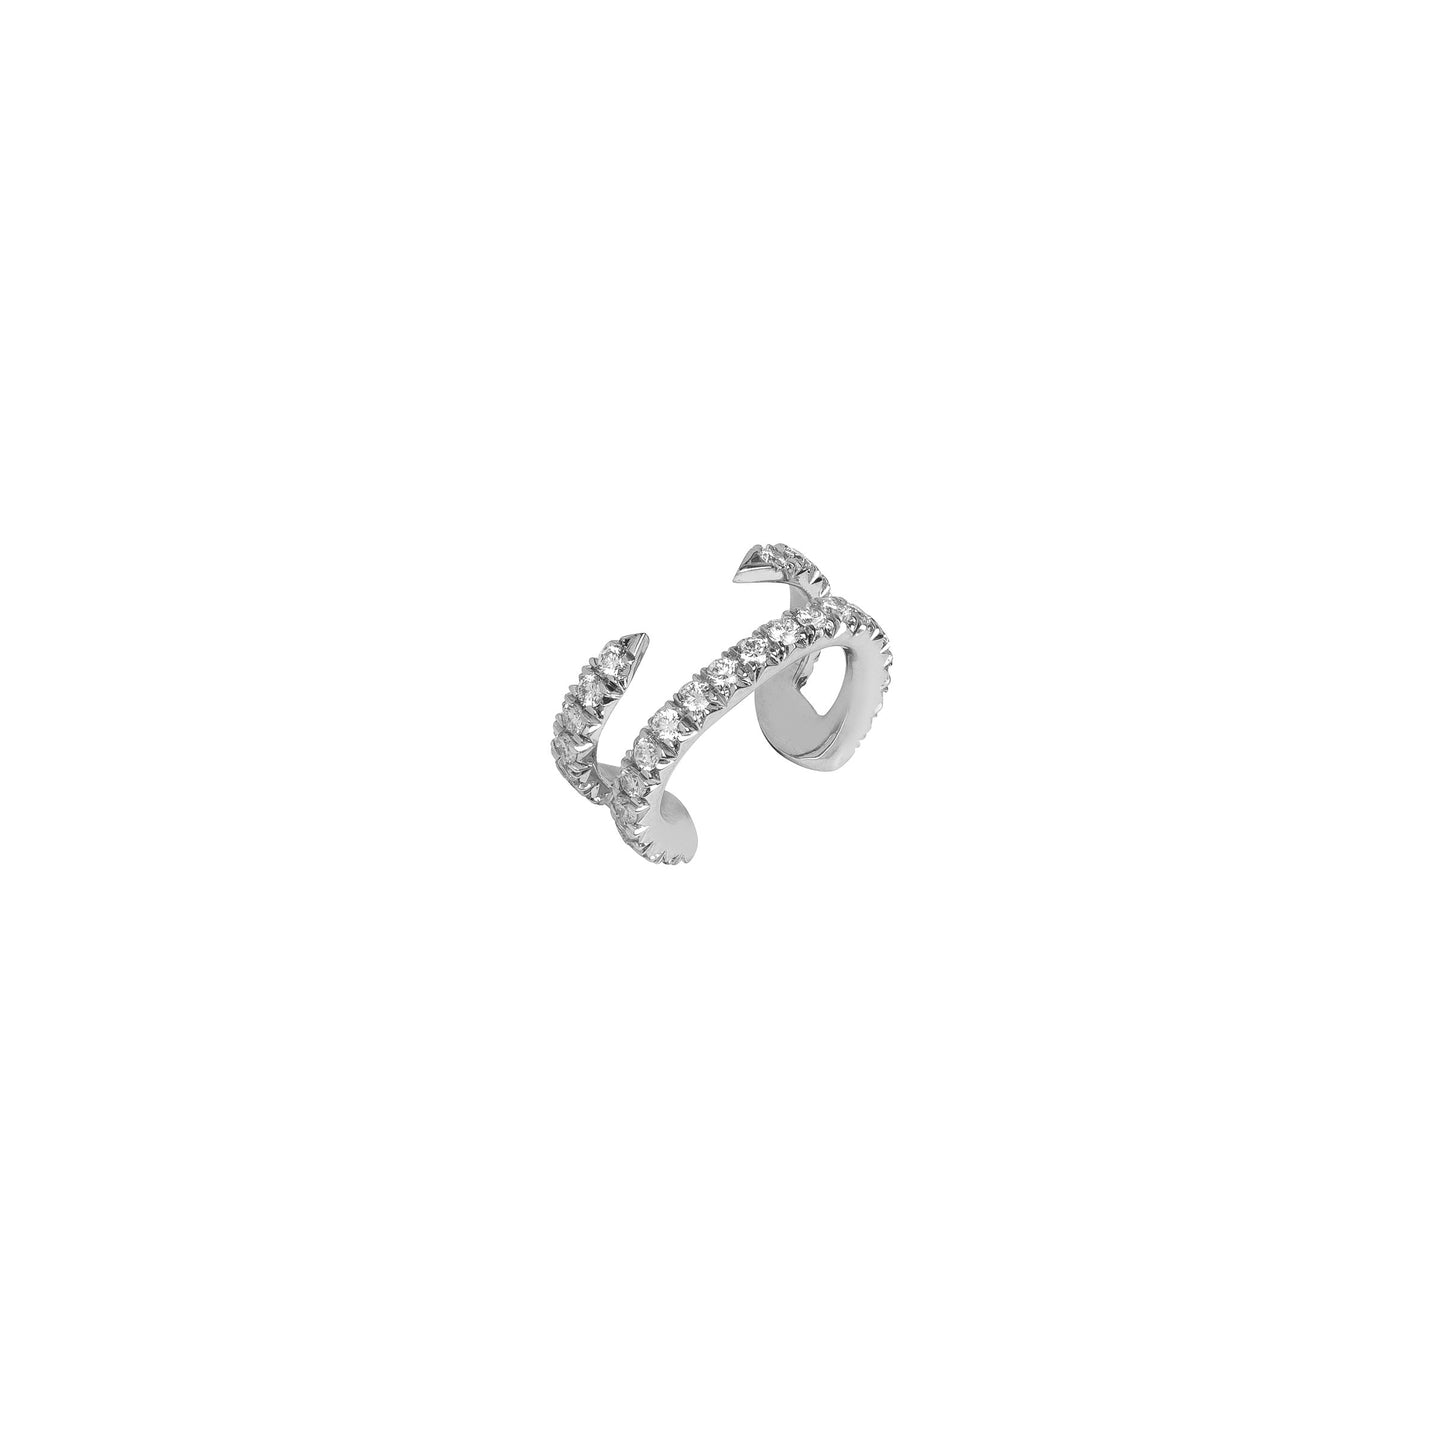 Pin Ear Cuff with pave White Diamonds